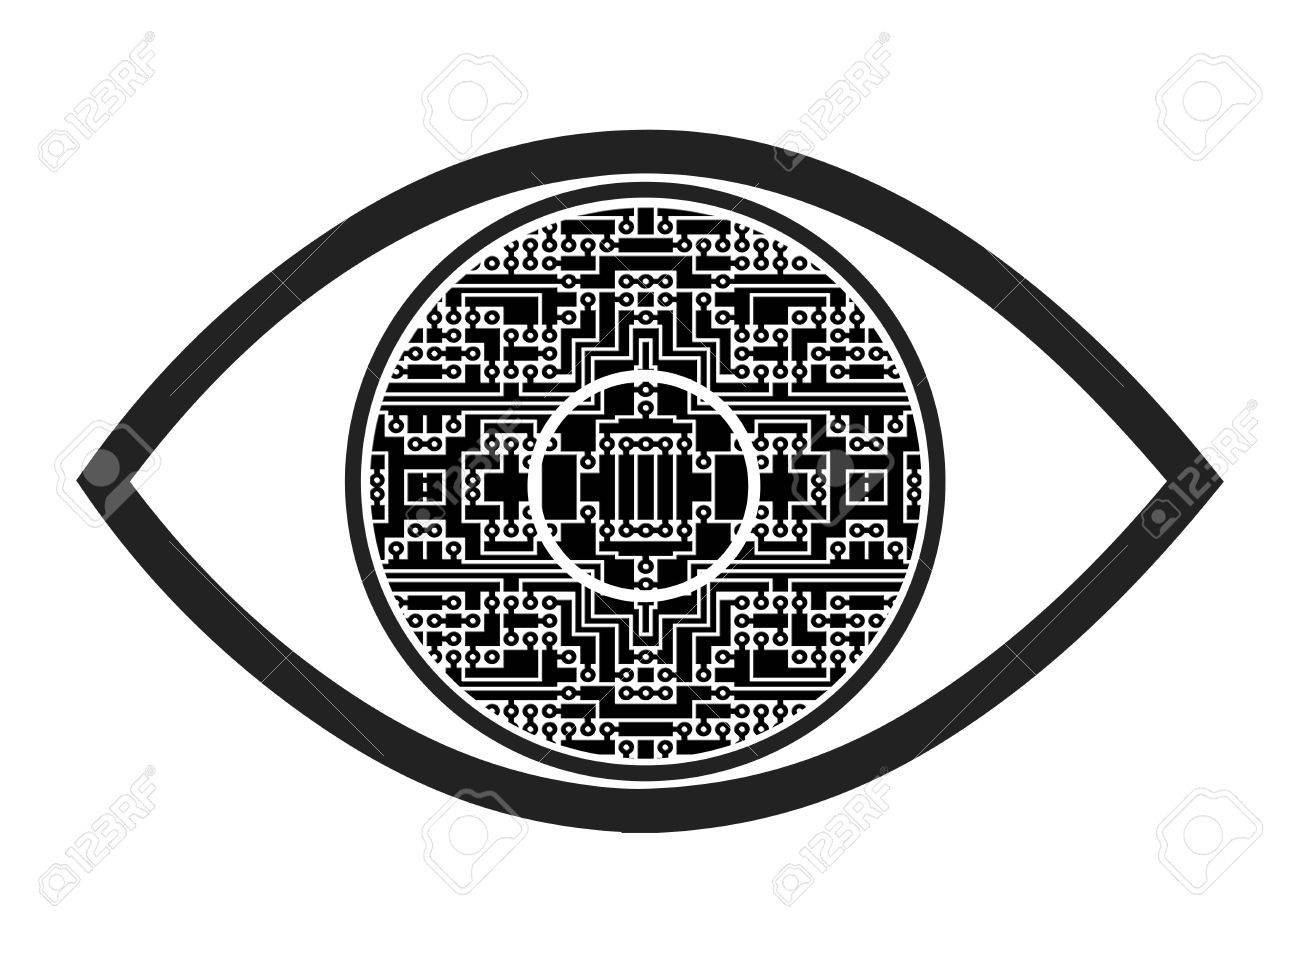 Bionic Eye Concept Sign And Symbol For A Visual Prosthesis To